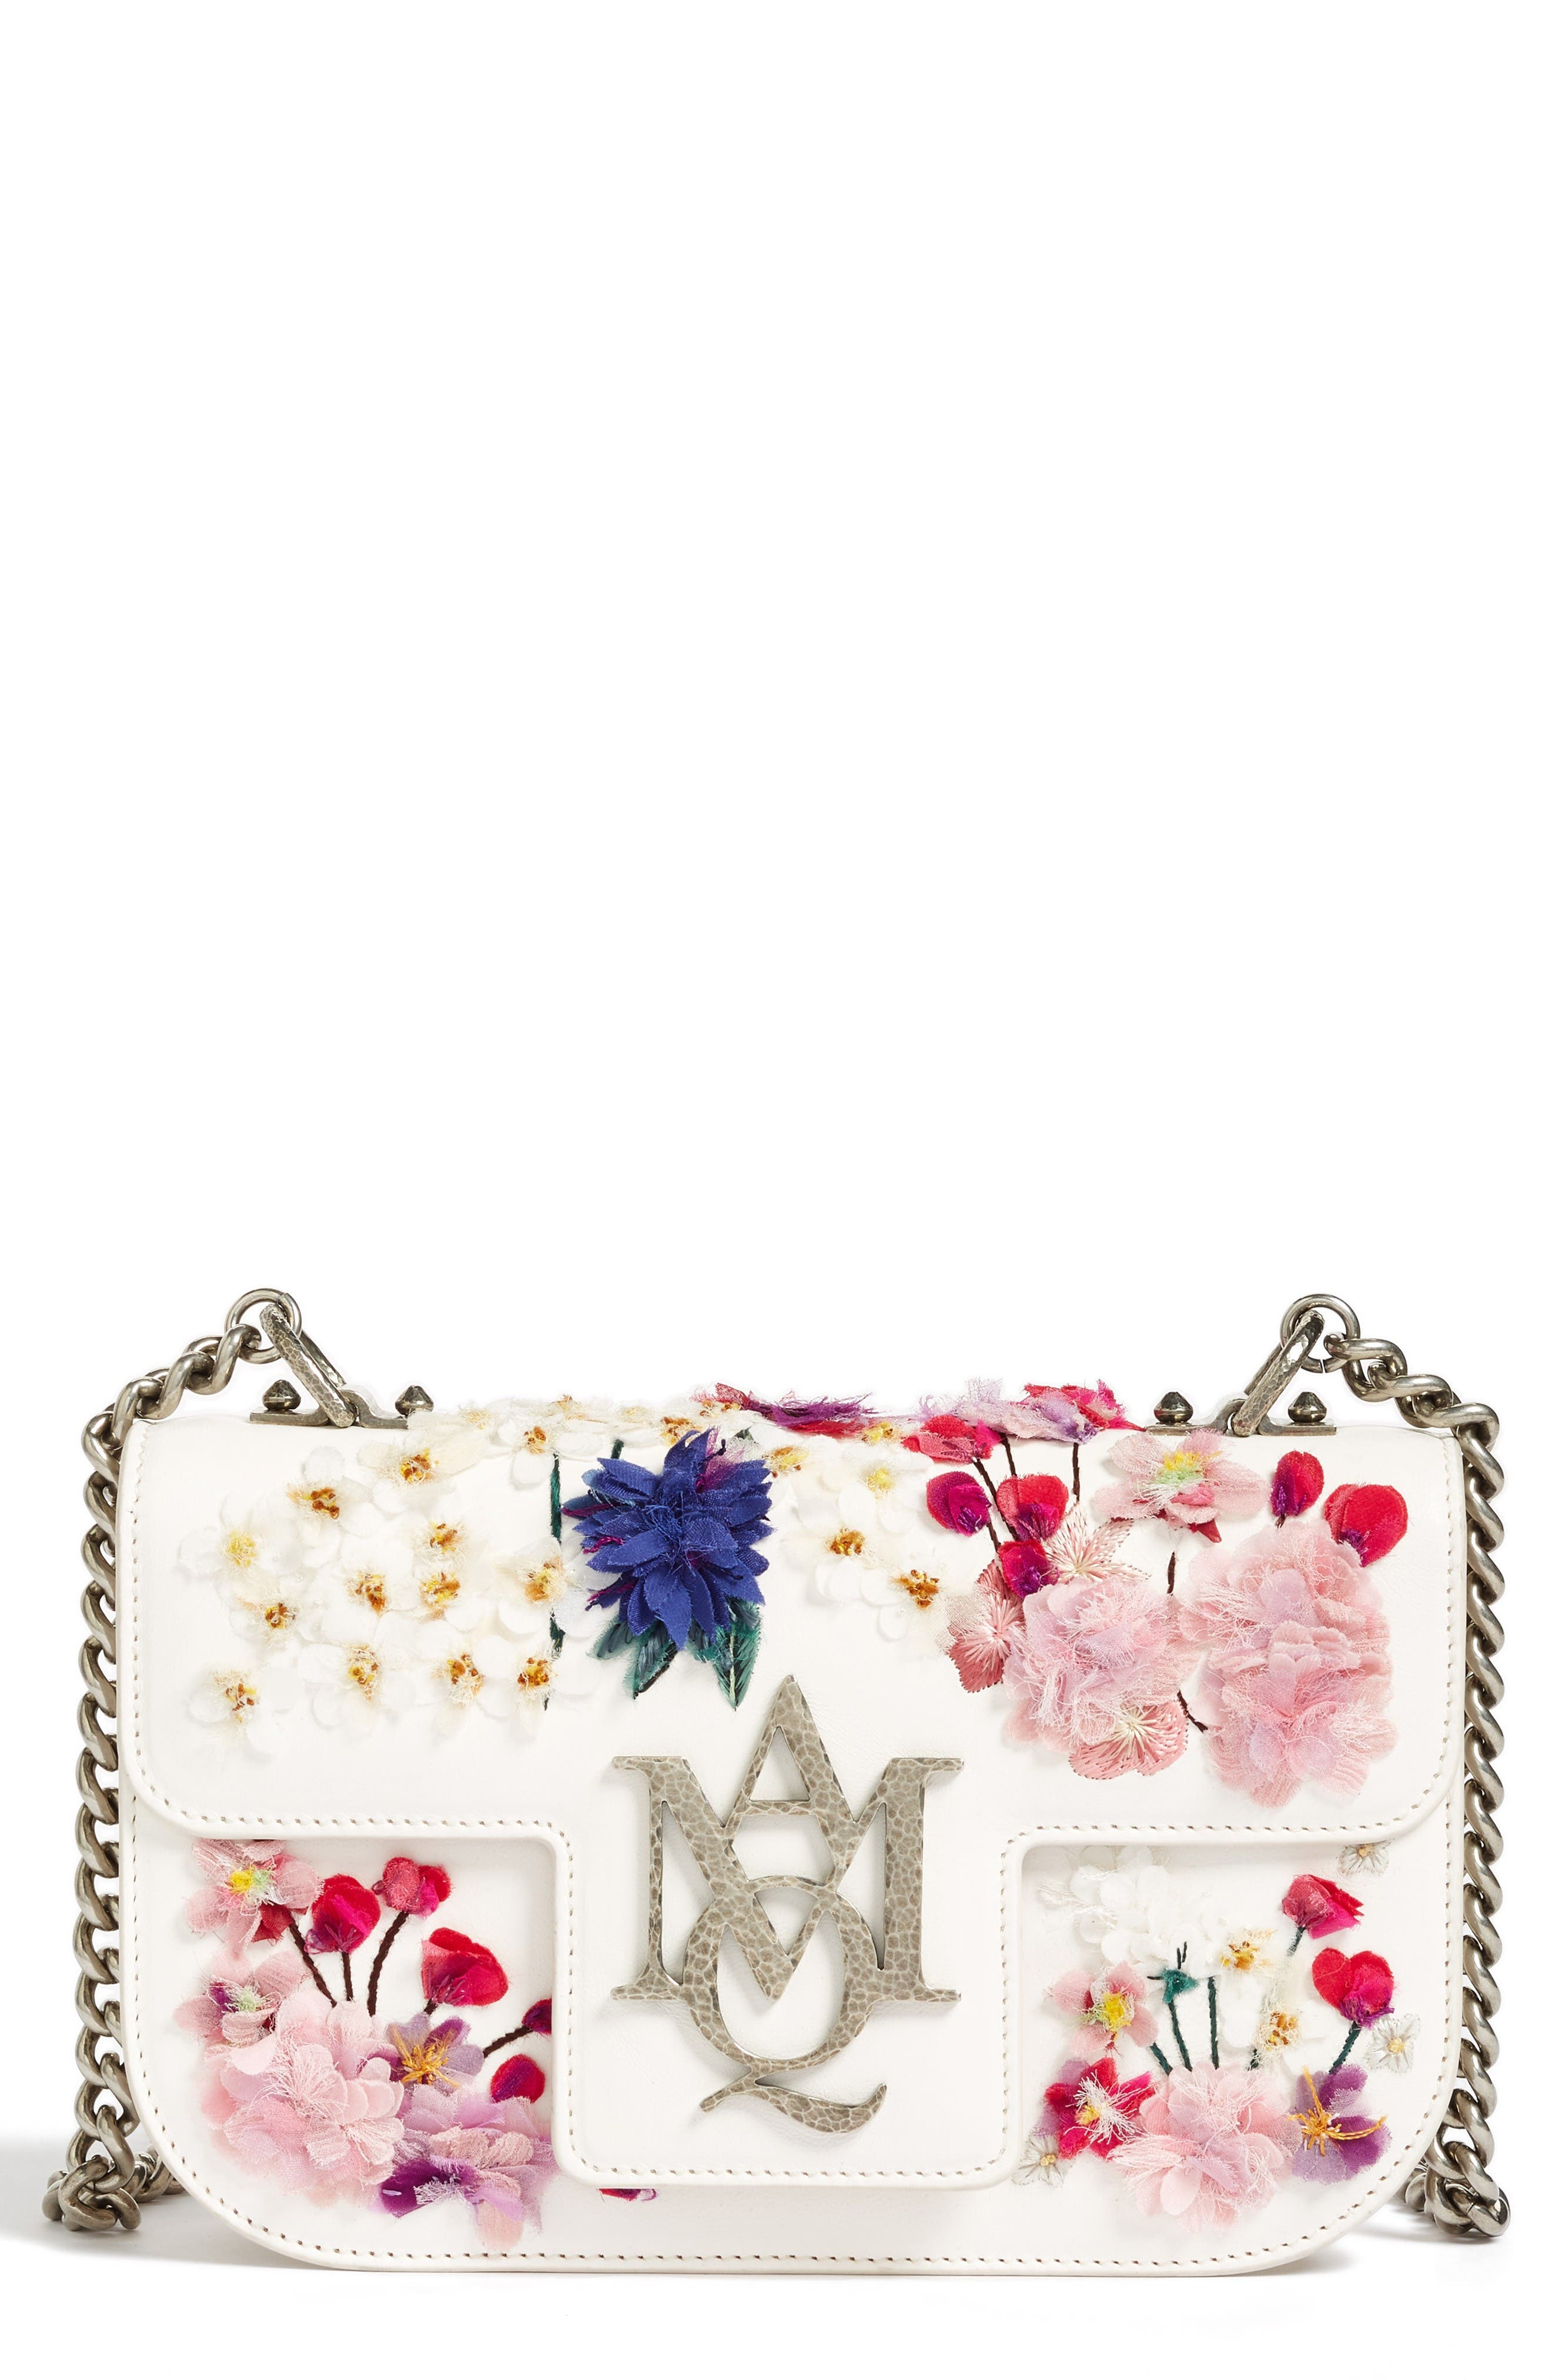 Main Image - Alexander McQueen Small Insignia Leather Shoulder Bag